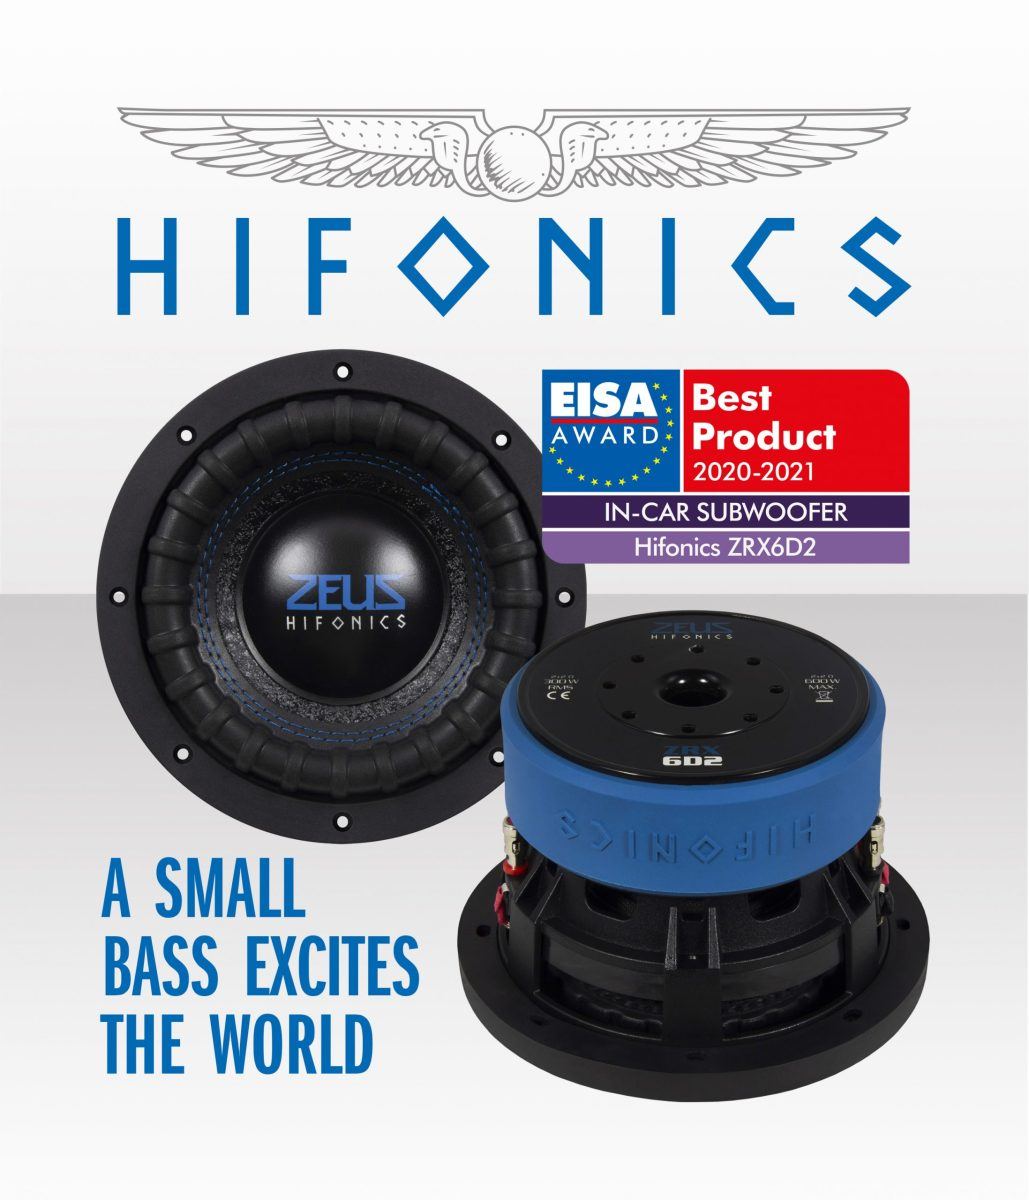 Best Car Subwoofer 2021 Playing with the Big Boys: Hifonics ZRX6D2 Subwoofer receives EISA